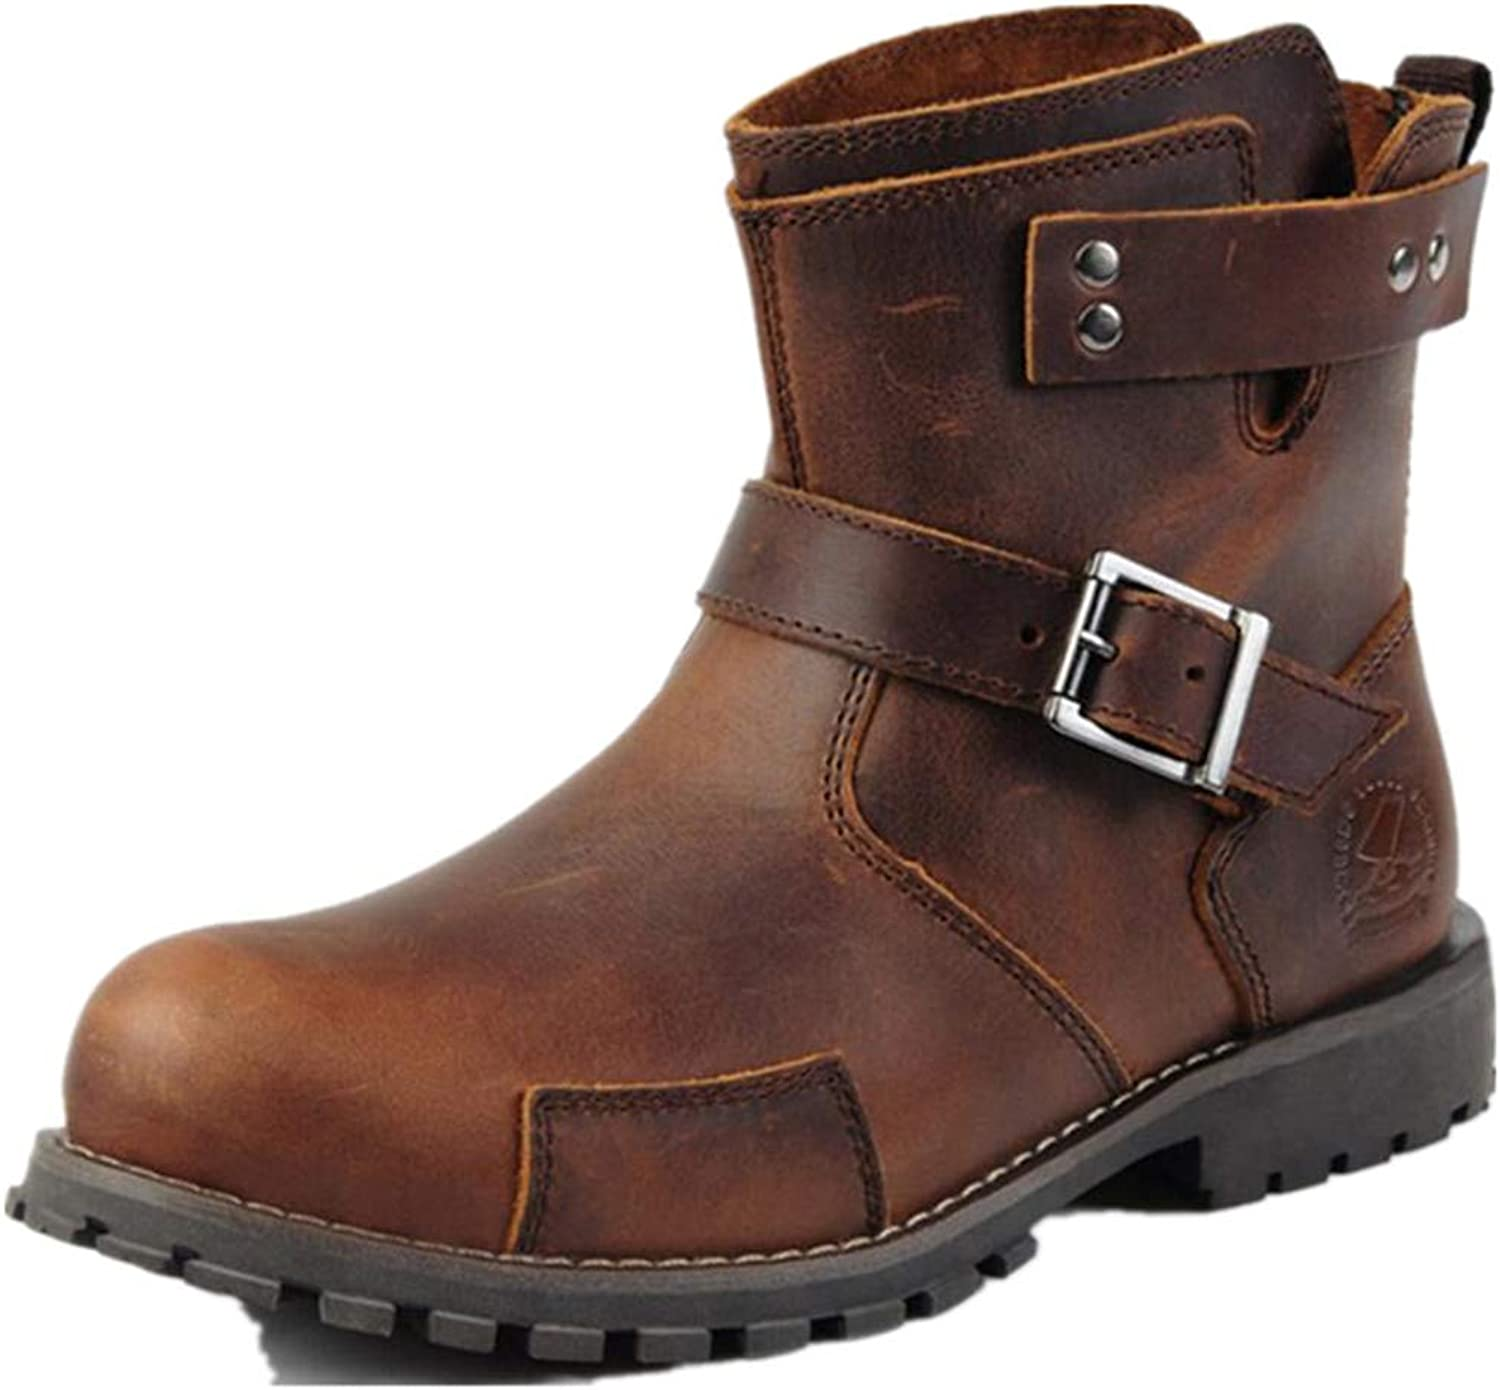 Jackdaine Men's Winter Martin Boots Casual Crazy Horse Leather Boots Trend Buckle Booties